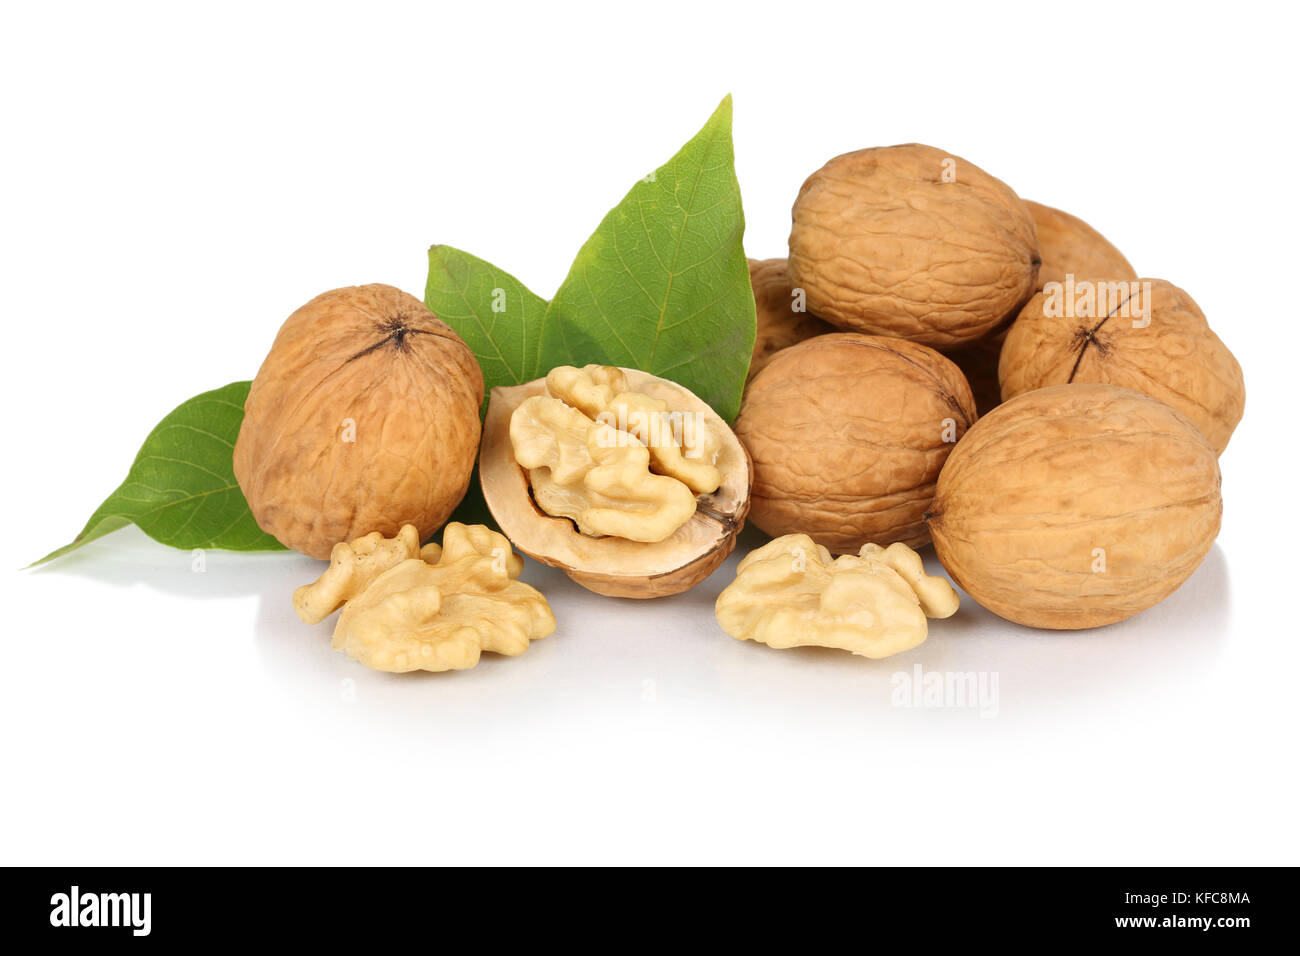 Walnuts walnut fresh nuts nut nutshell isolated on a white